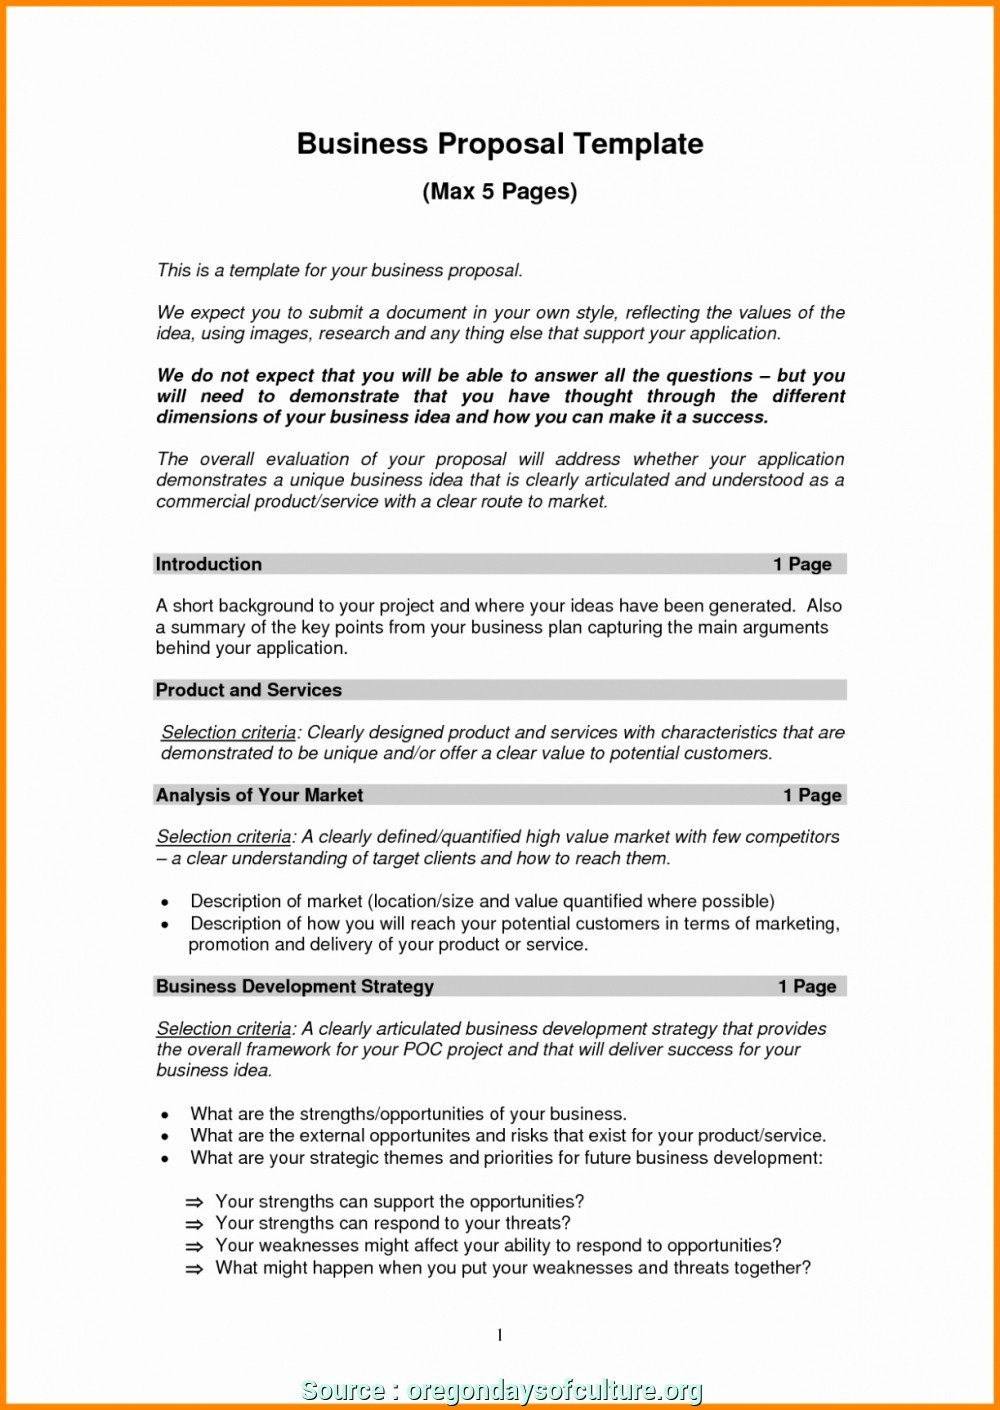 Creative Business Idea Proposal Template Ideas  Tiger Growl Intended For Business Idea Template For Proposal